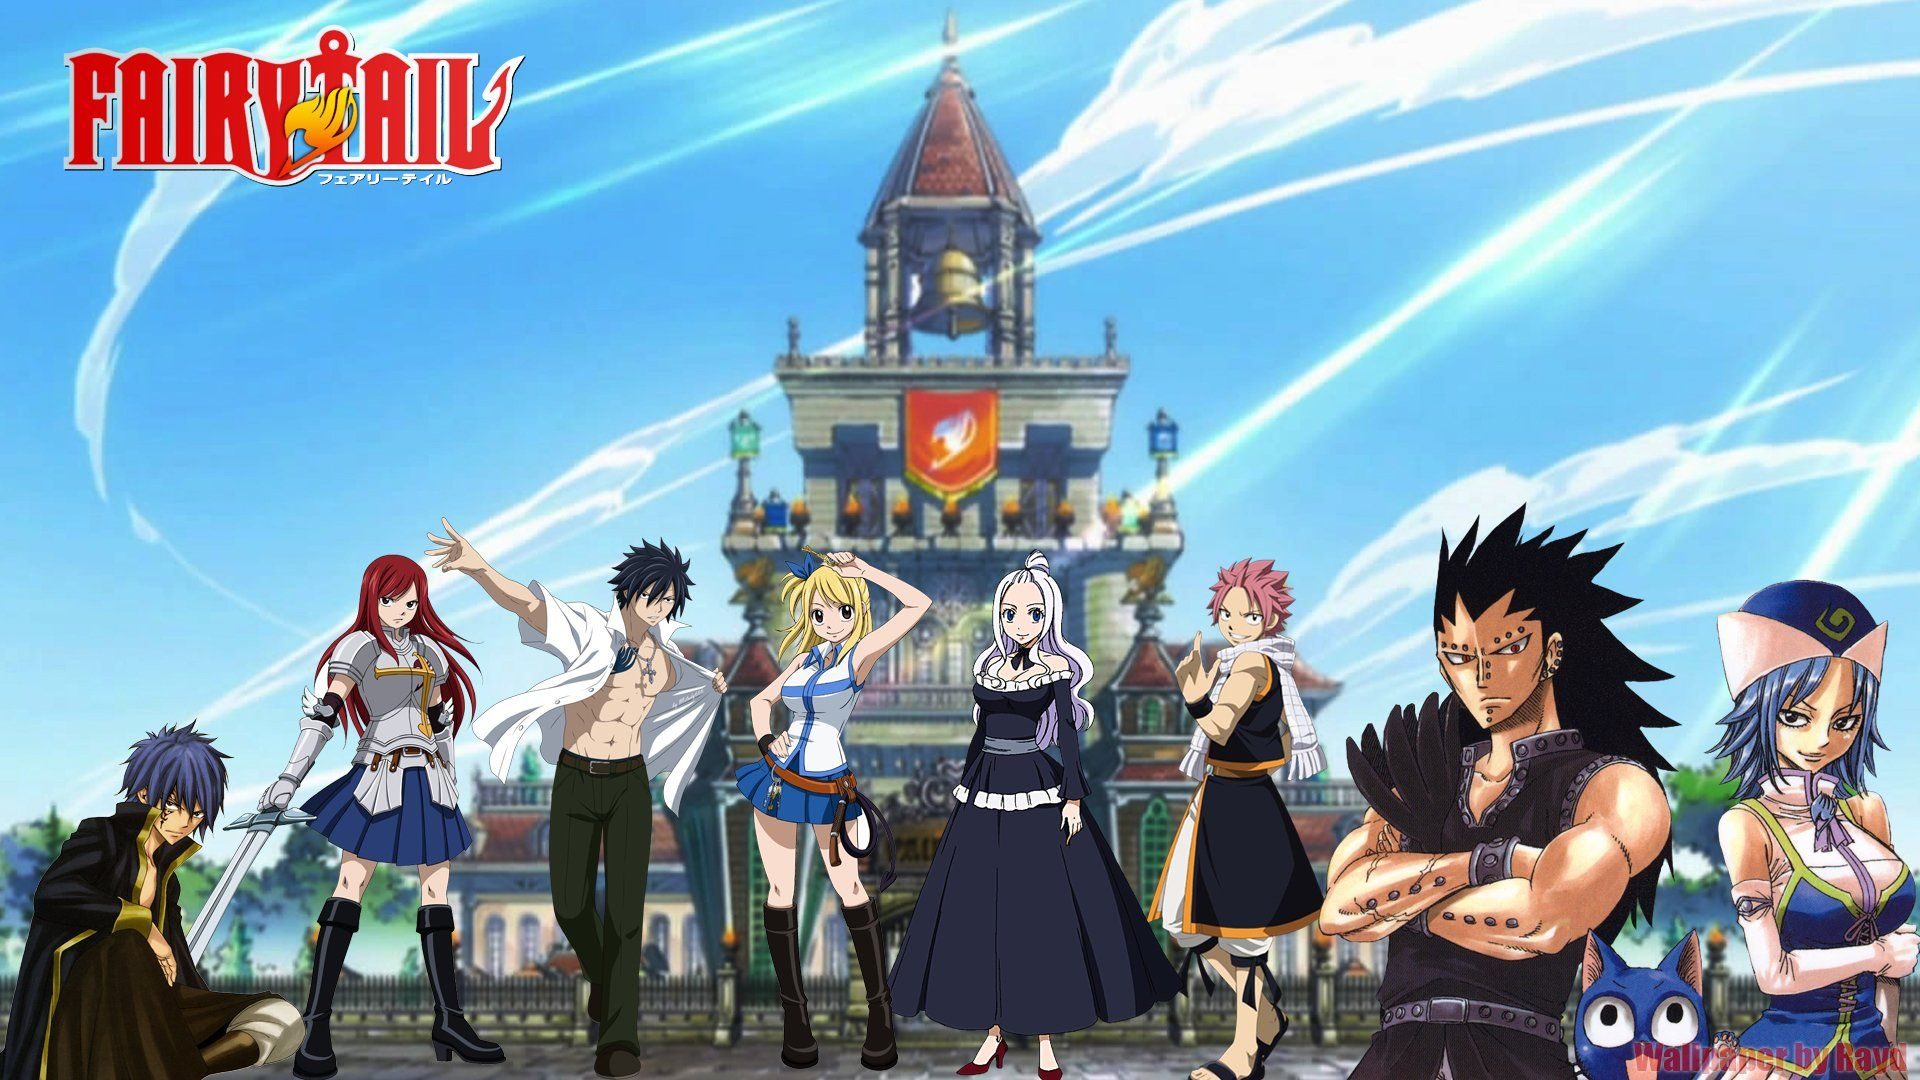 1920x1080 933 Fairy Tail HD Wallpapers | Background Images - Wallpaper Abyss